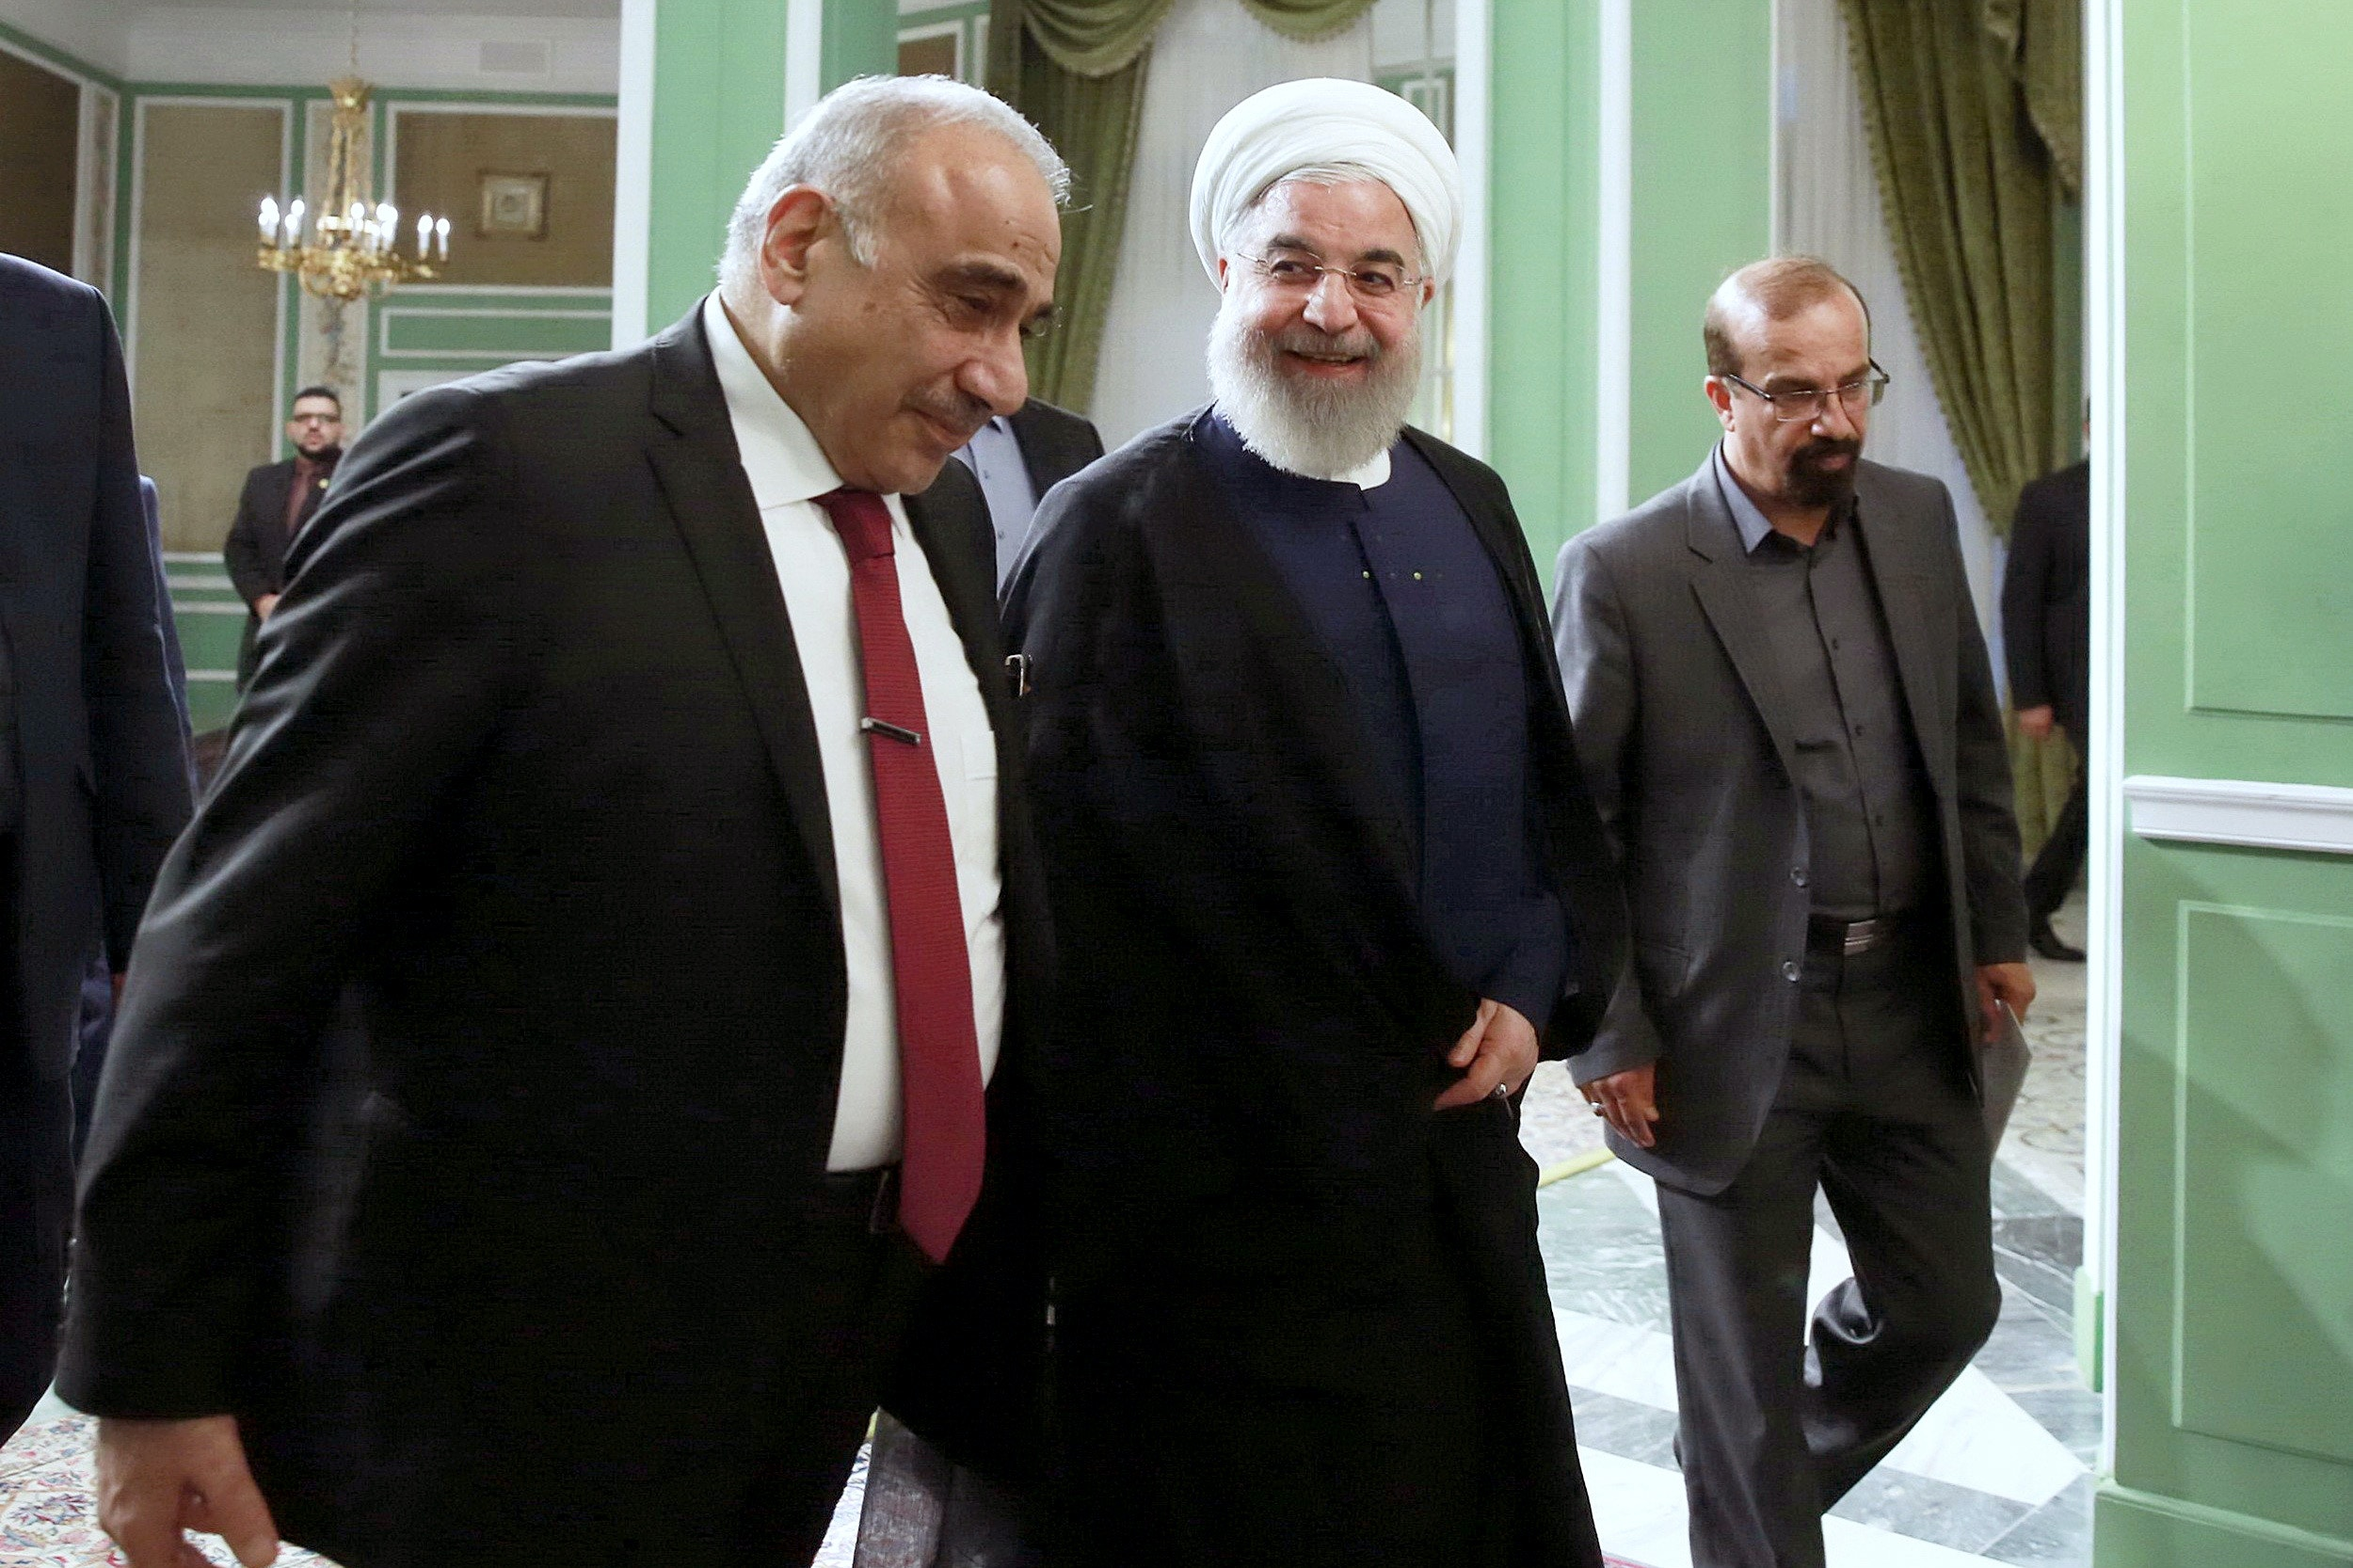 TEHRAN, IRAN - JULY 22: Iraqi Prime Minister Adil Abdul-Mahdi (L) meets with Iranian President Hassan Rouhani (C) as part of his visit in Tehran, Iran on July 22, 2019. (Photo by Iranian Presidency/Handout/Anadolu Agency via Getty Images)